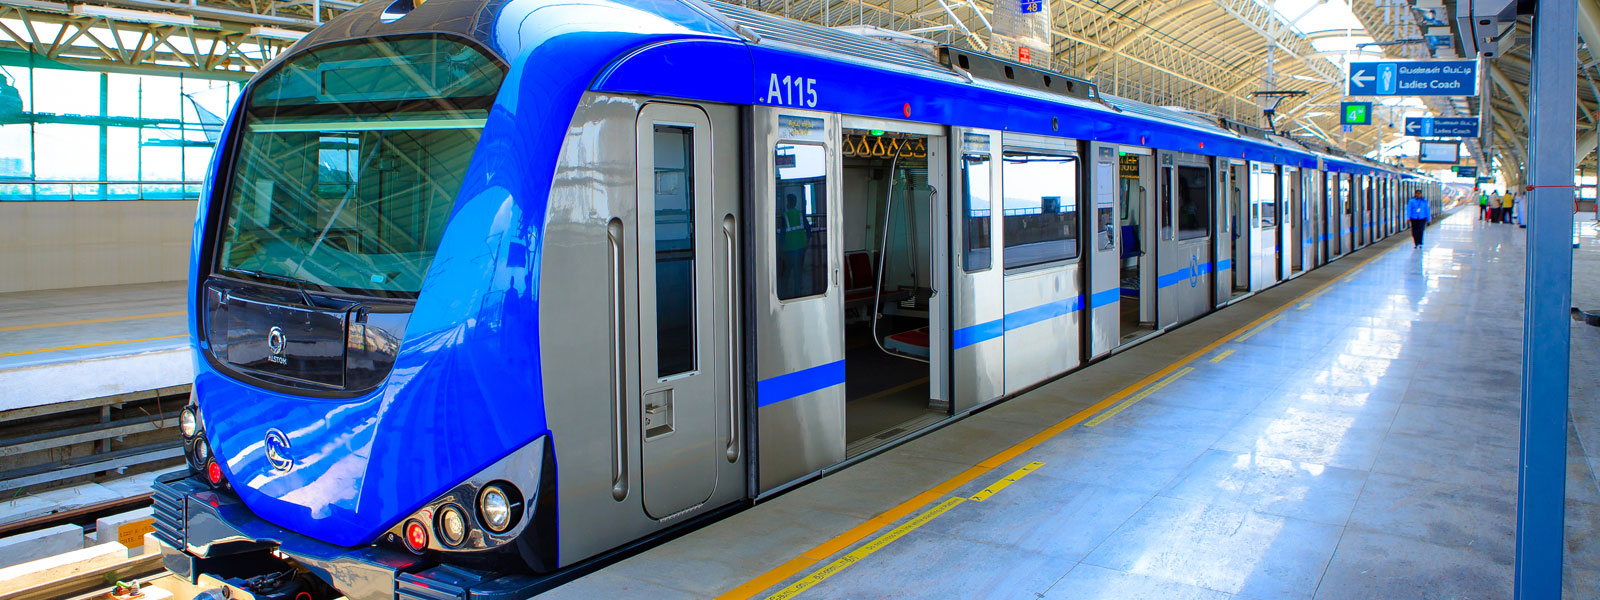 For first time in India, Chennai Metro Rail does chemical-free sanitisation